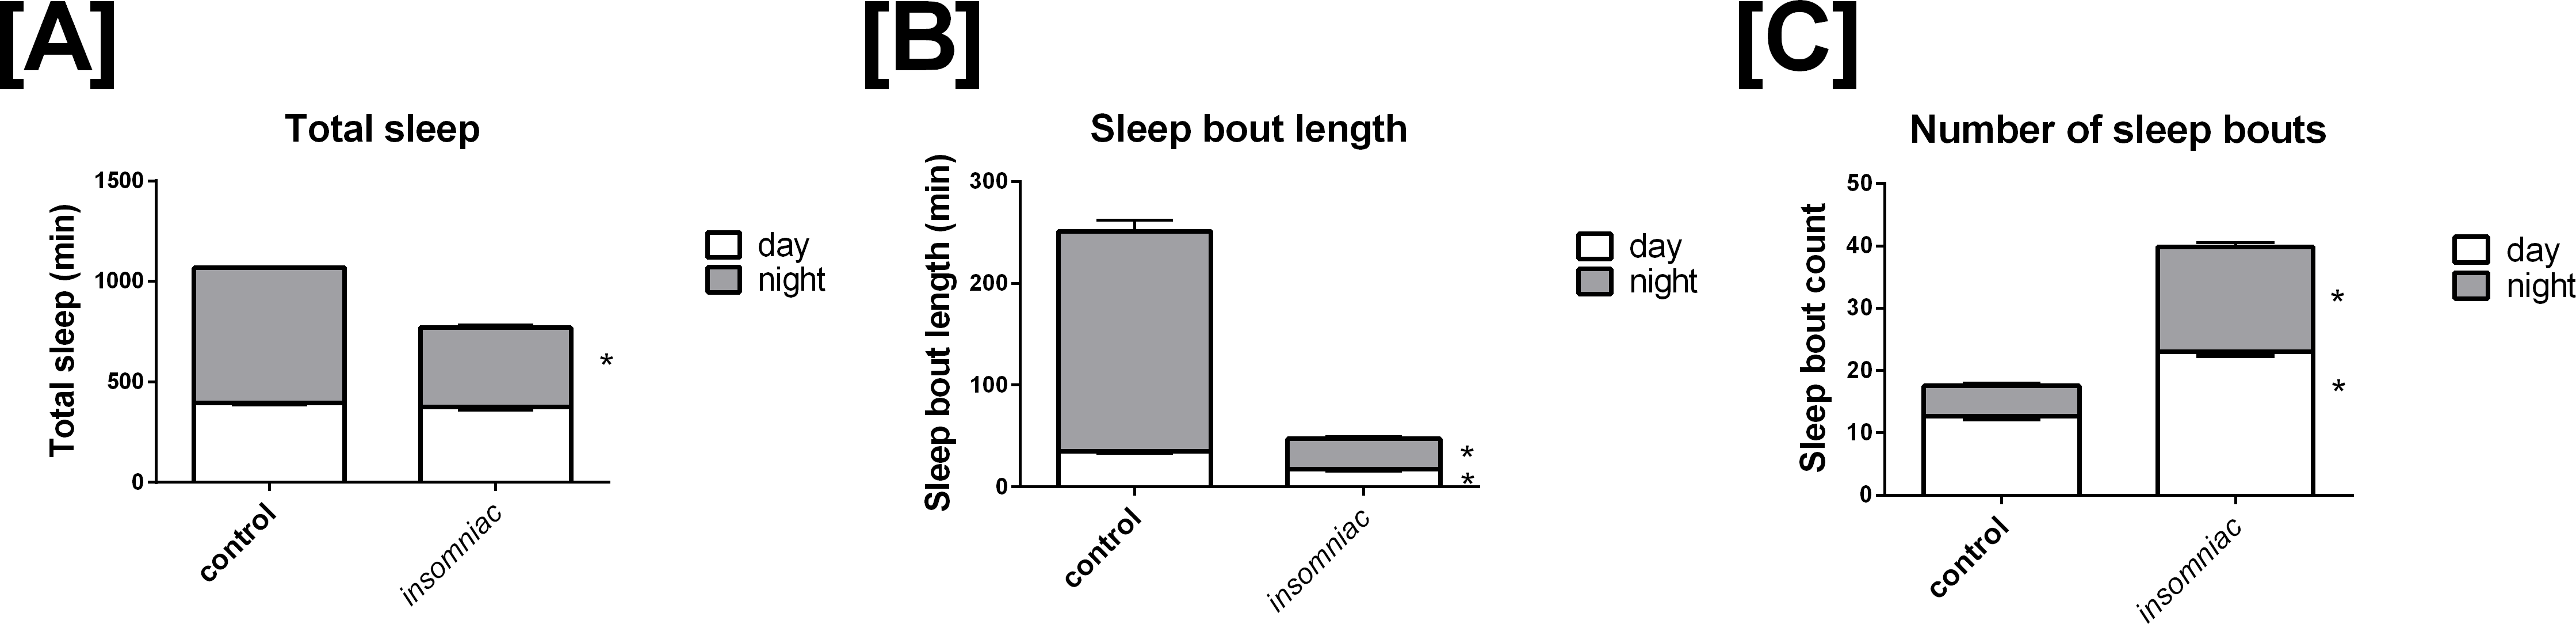 Goodness of fit to a mathematical model for Drosophila sleep